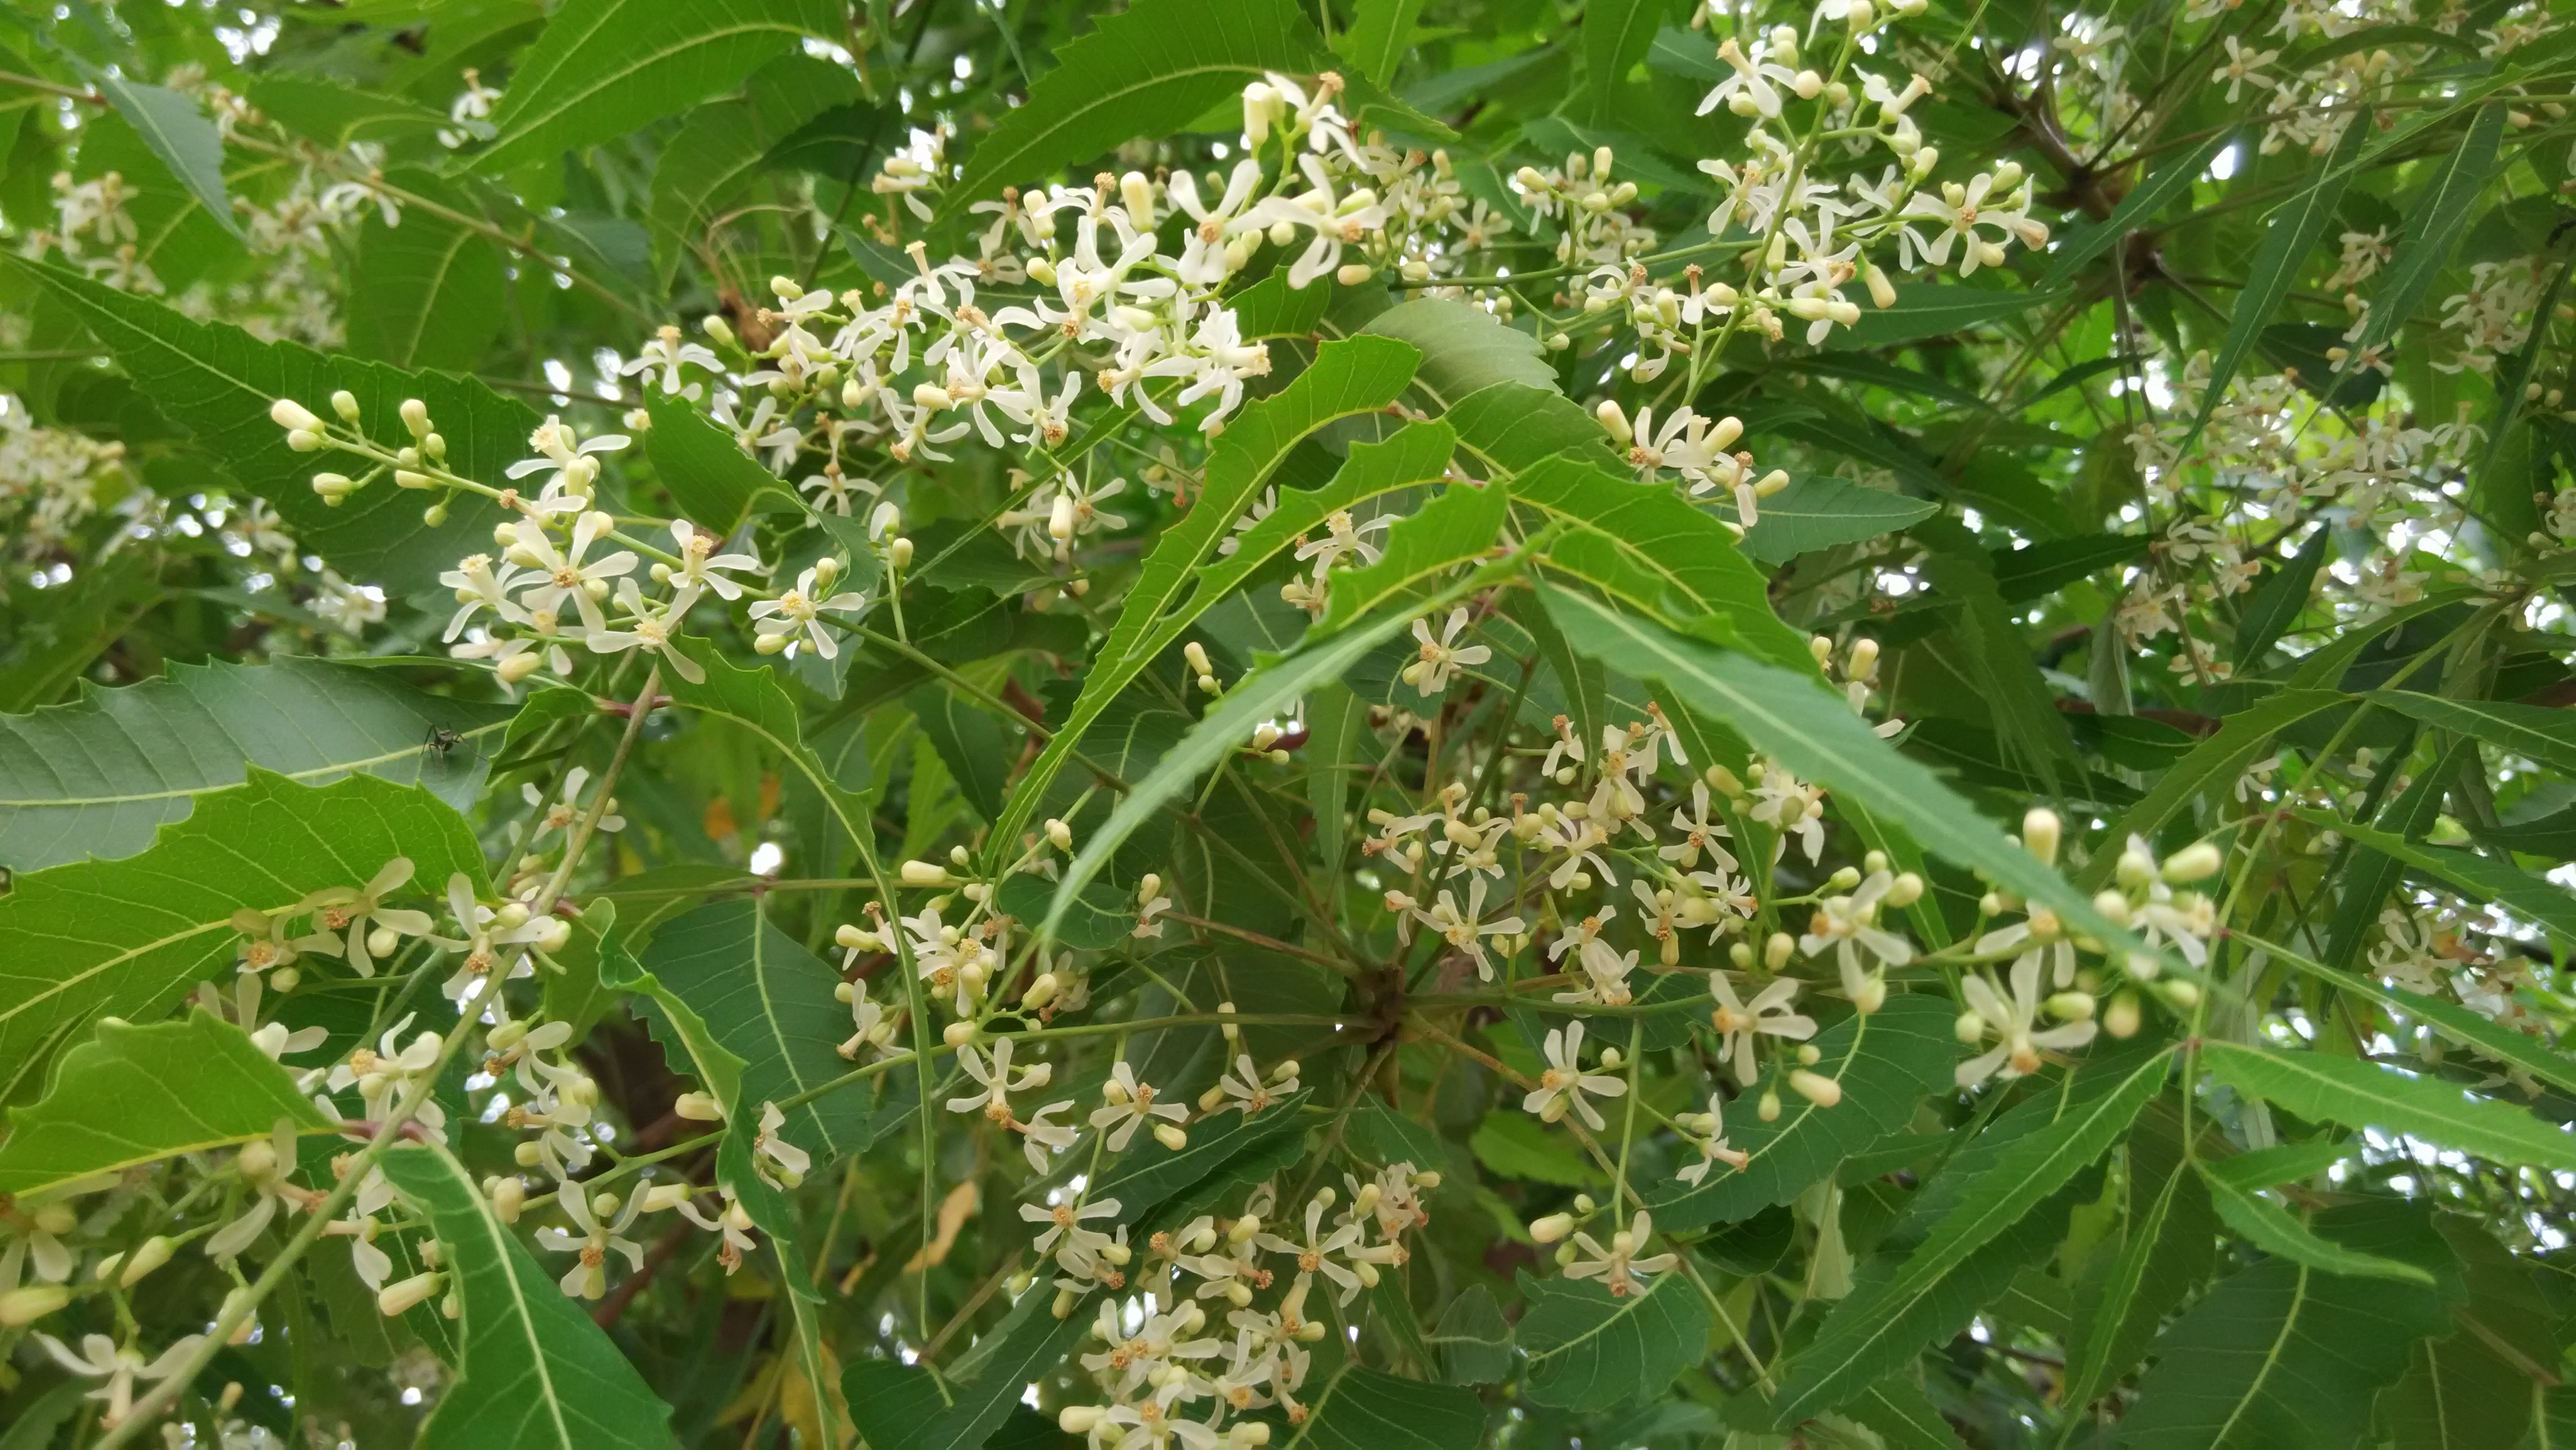 Edible Wild Flowers - Eat The Weeds and other things, too Neem tree flowers photos